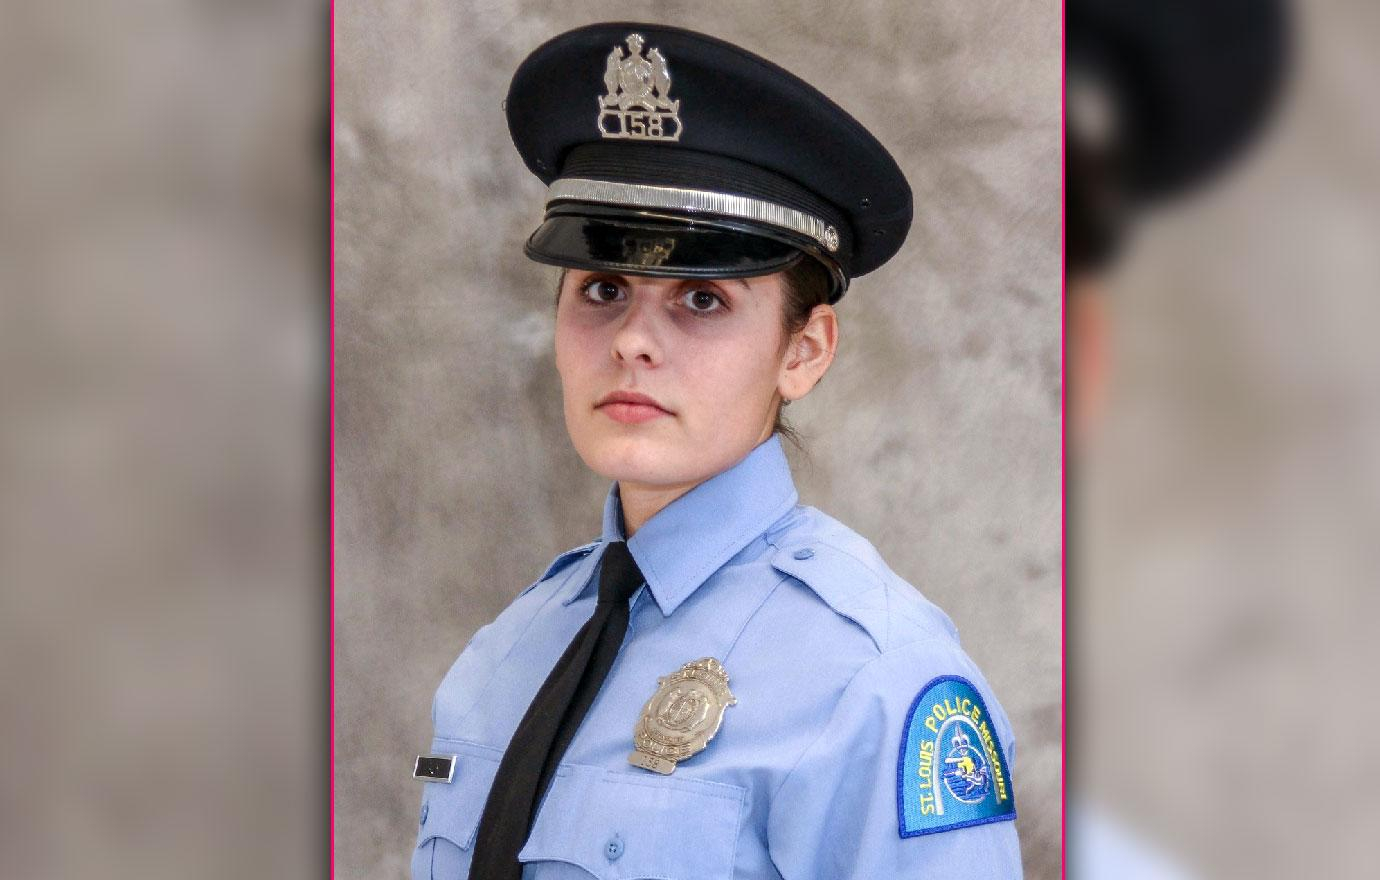 St Louis Cops Involved In Deadly Russian Roulette